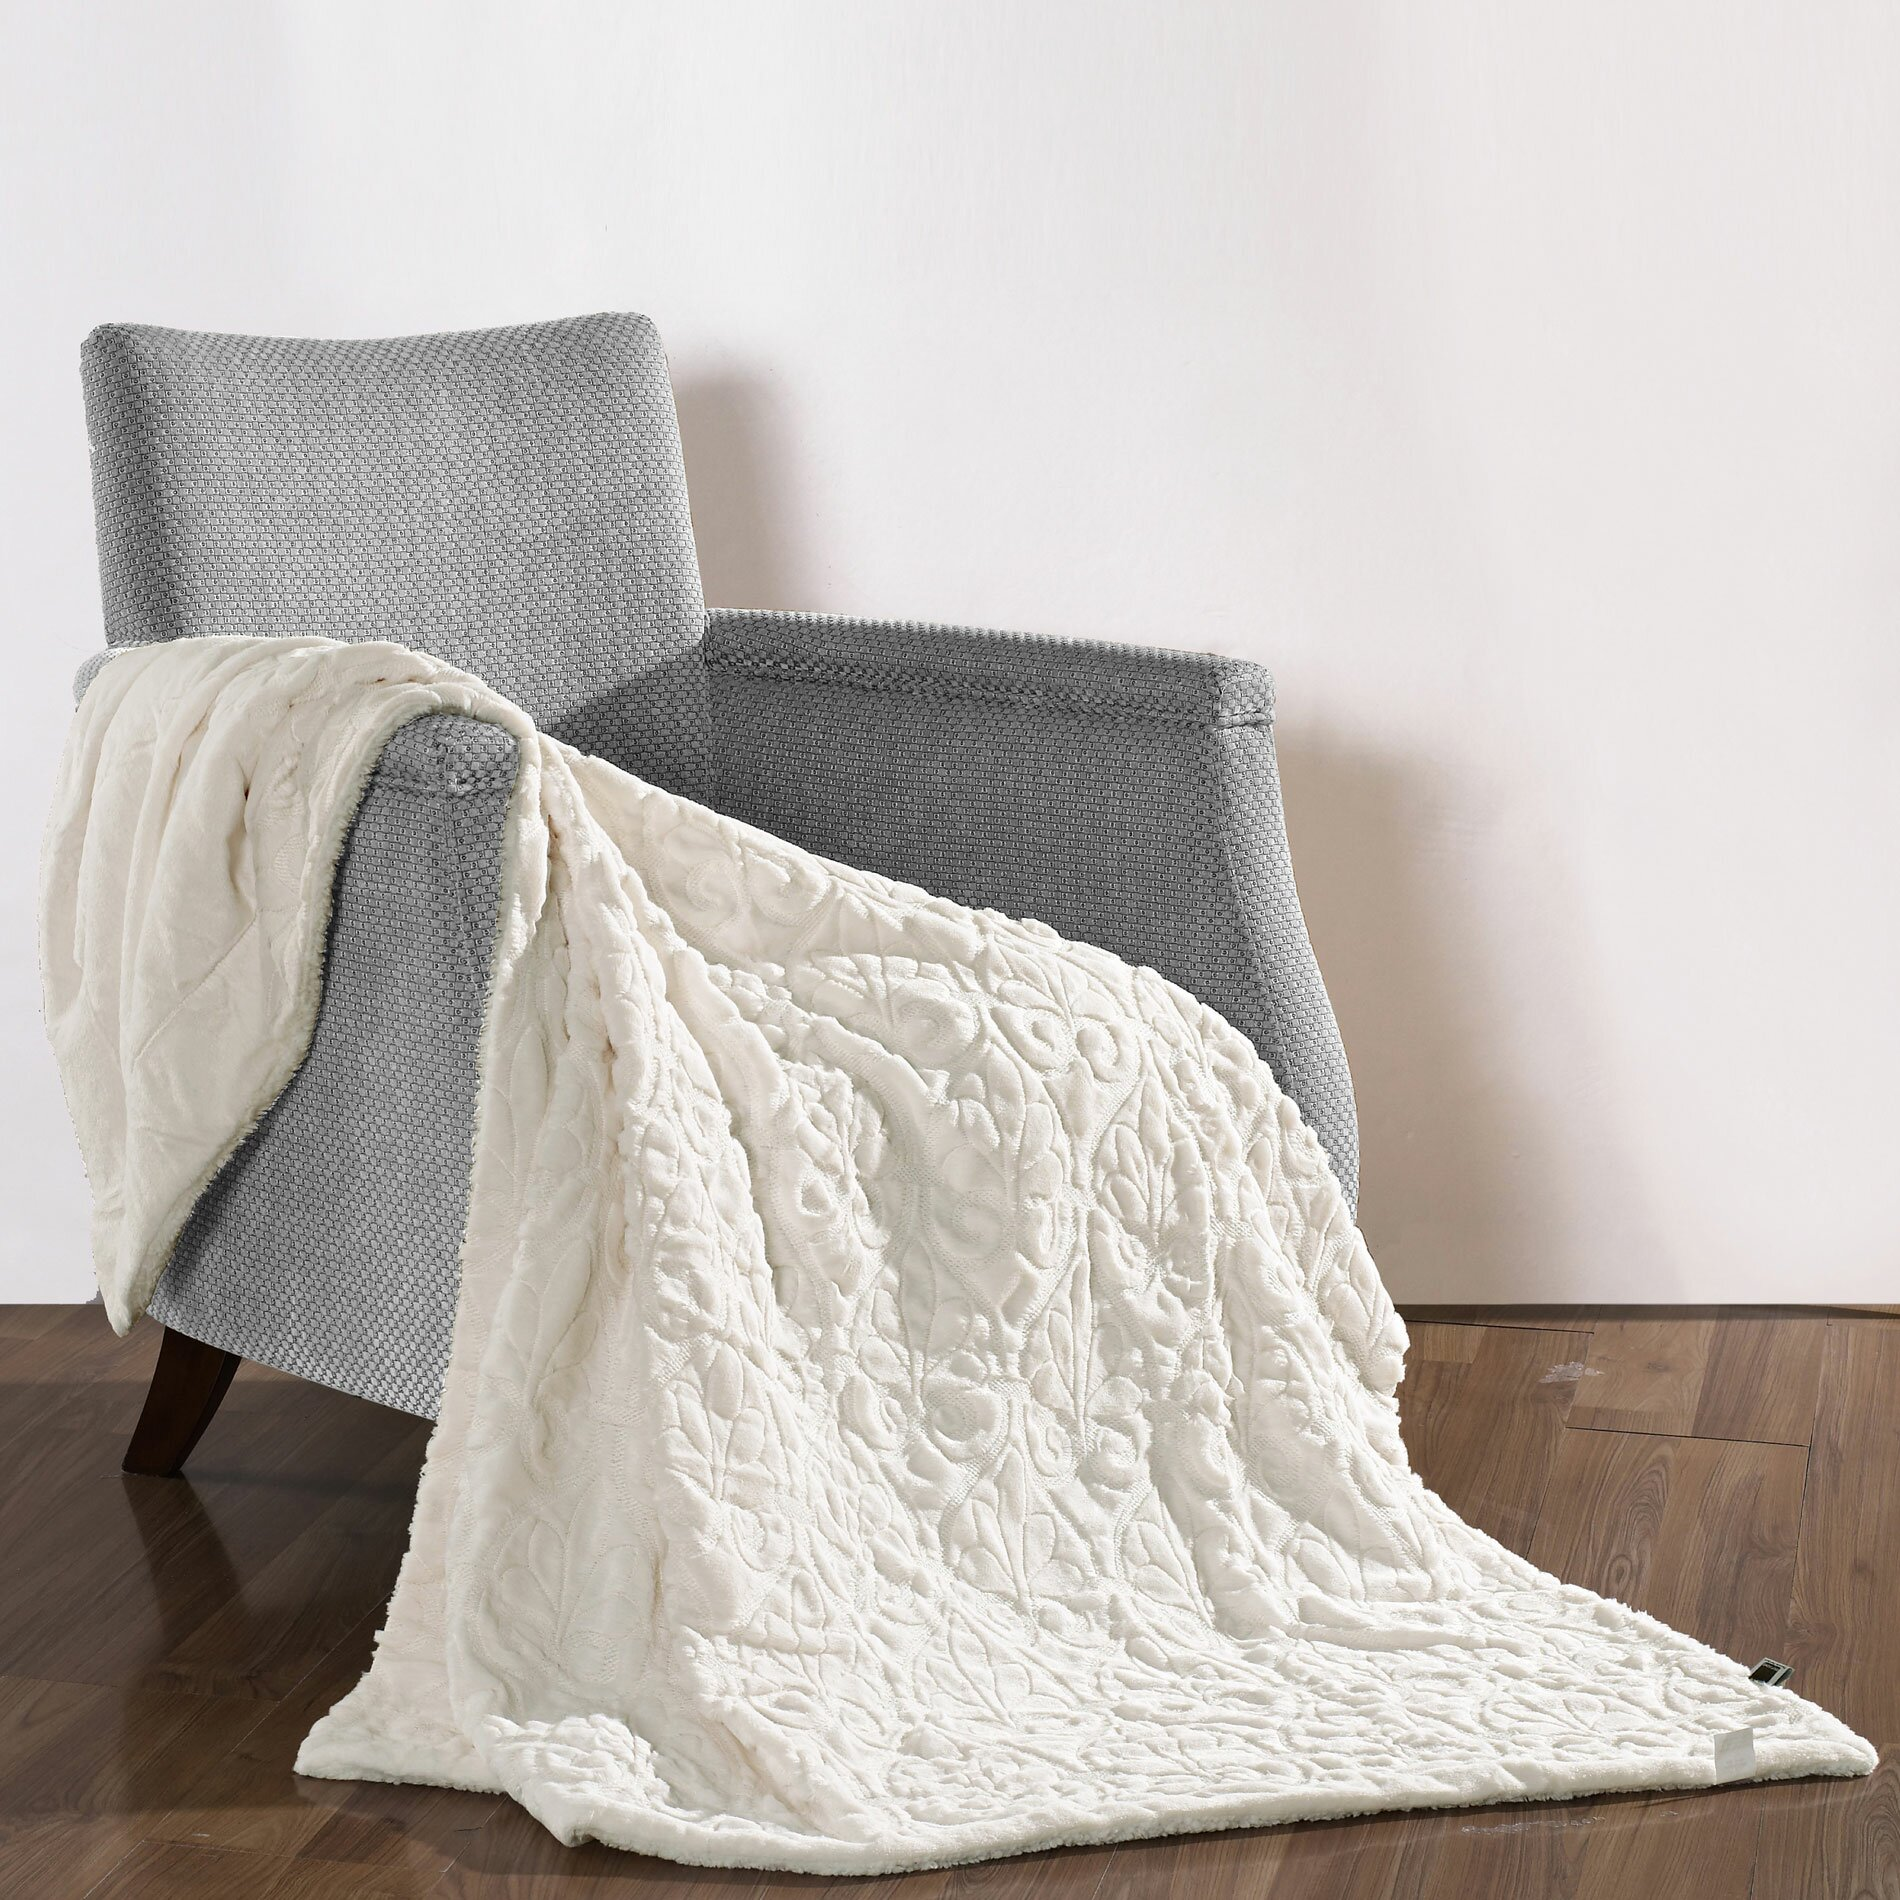 Boon throw blanket pamila faux fur sherpa throw for Sherpa blanket